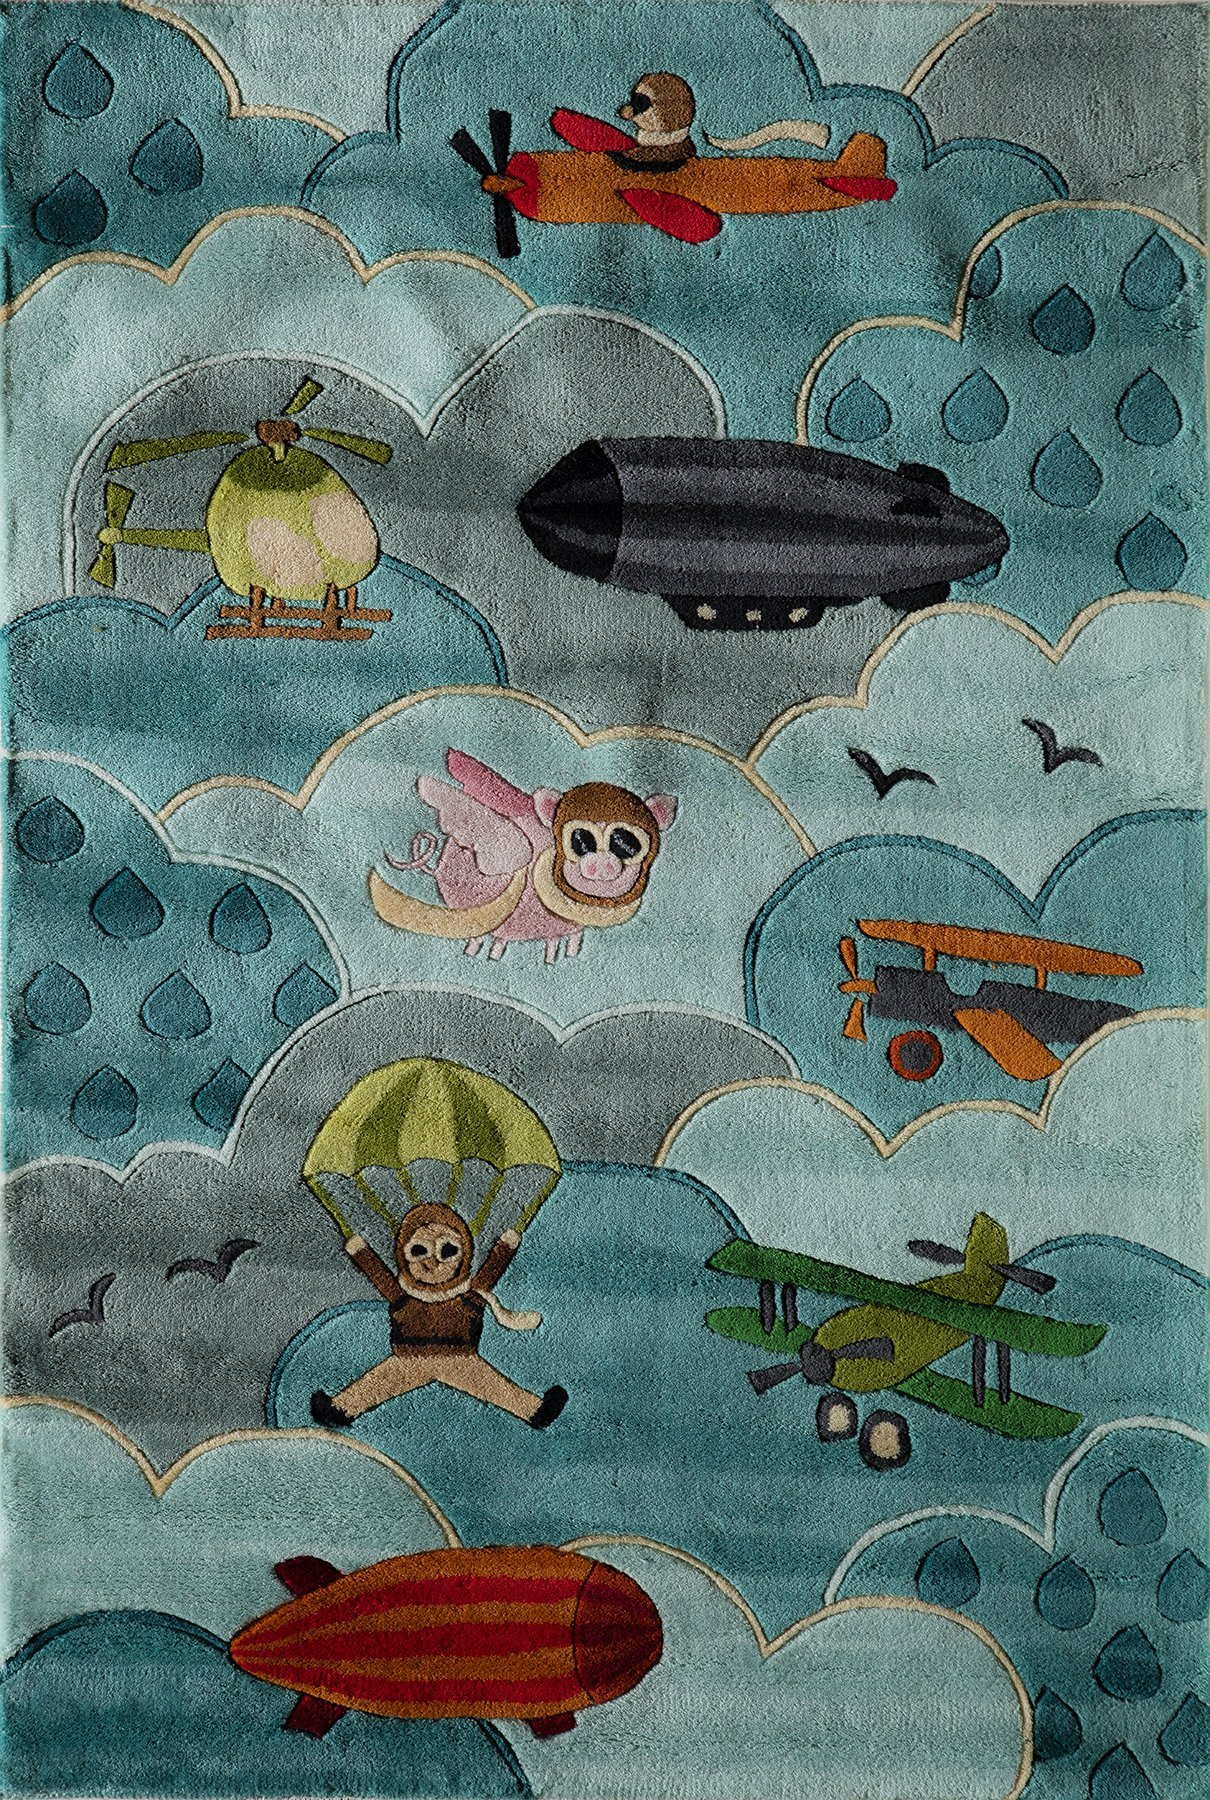 Momeni Rugs LMOJULMJ10SKY4060 Lil' Mo Whimsy Collection, Kids Themed Hand Carved & Tufted Area Rug, 4' x 6', Sky Blue